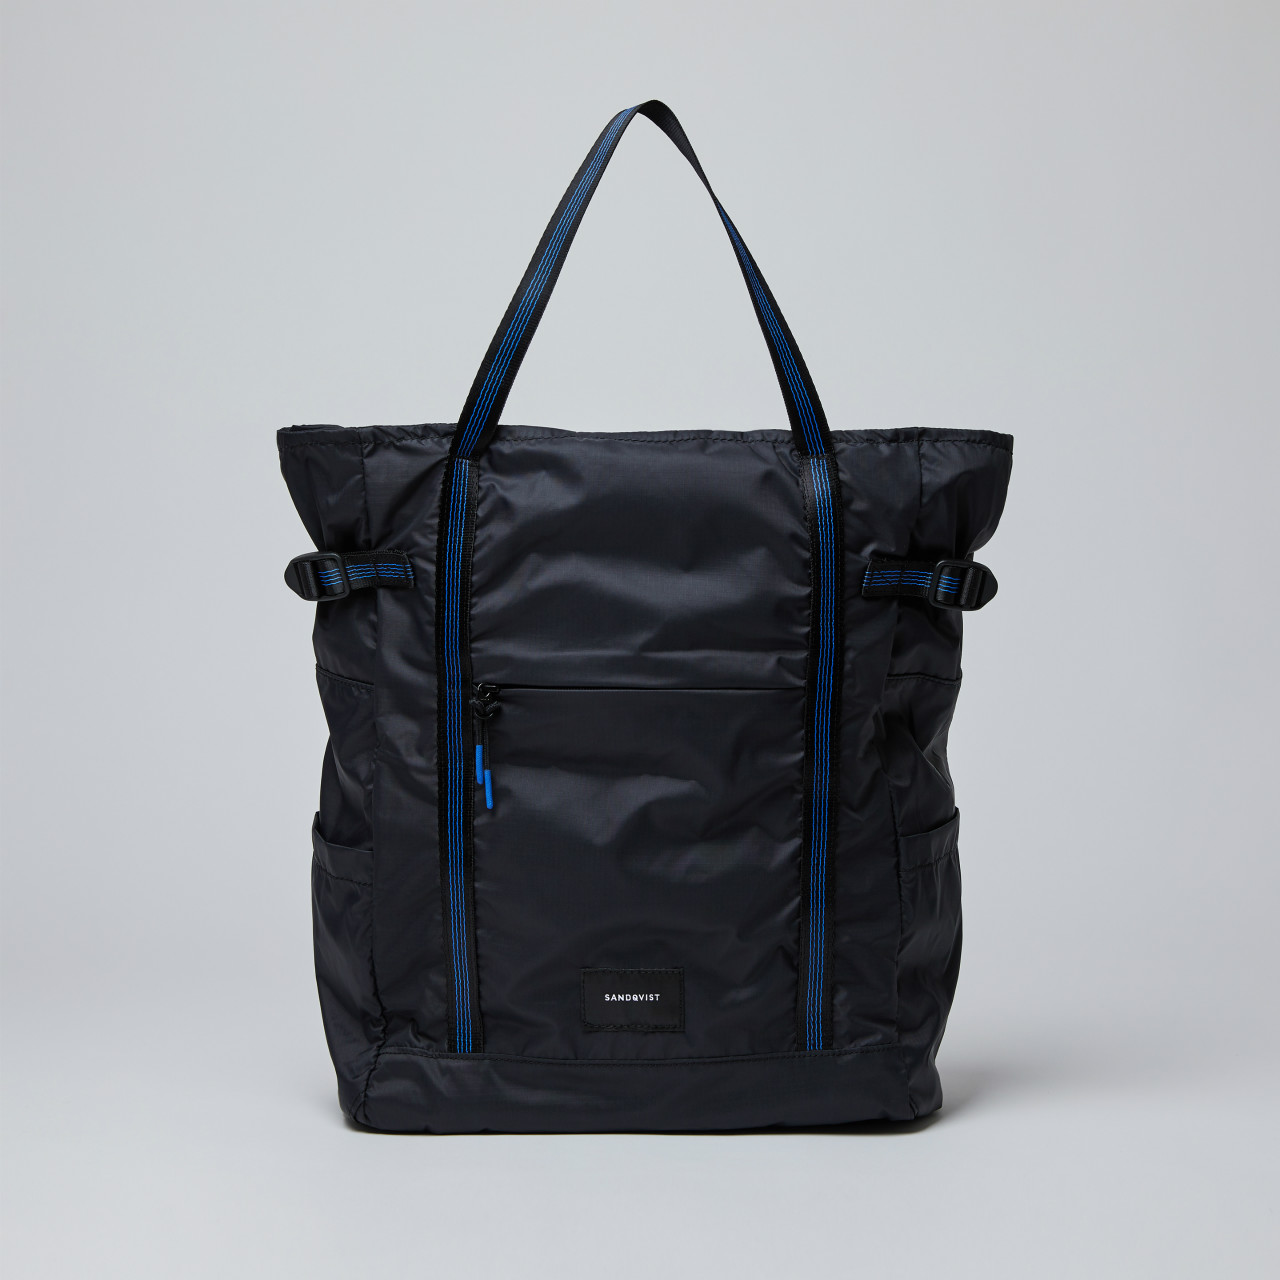 SANDQVIST サンドクヴィスト ROGER LIGHT WEIGHT BLACK